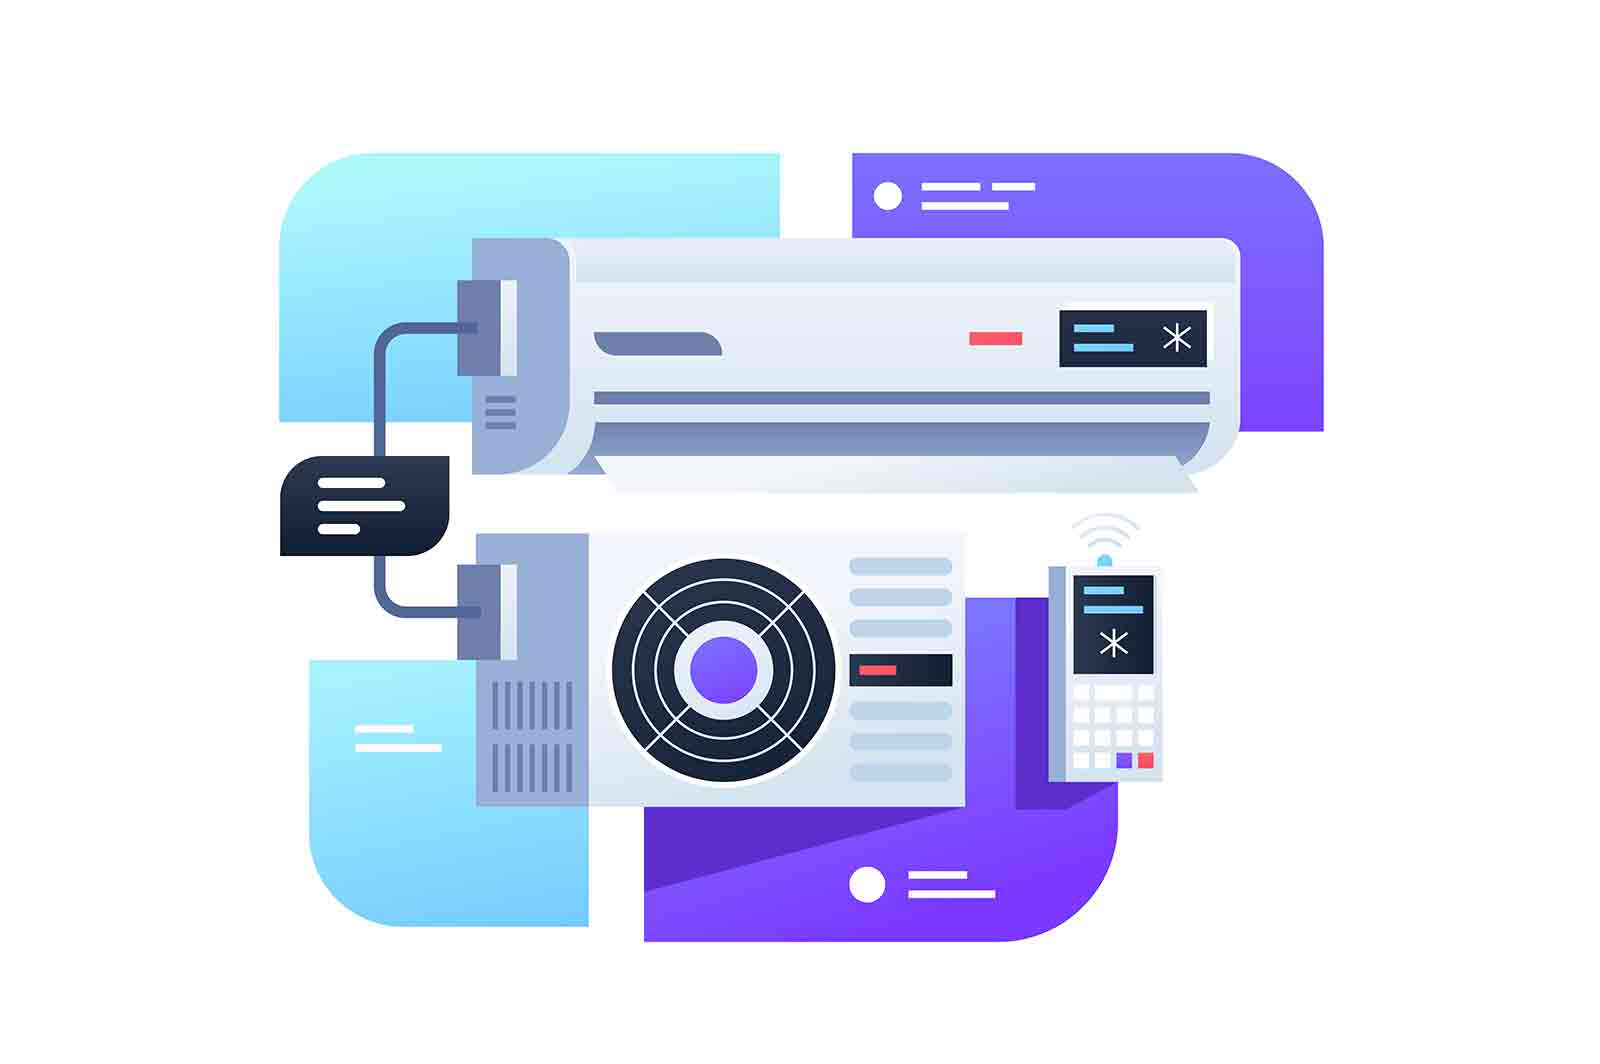 Modern air conditioning with remote control device. Isolated concept digital technology icon on description box background. Vector illustration.